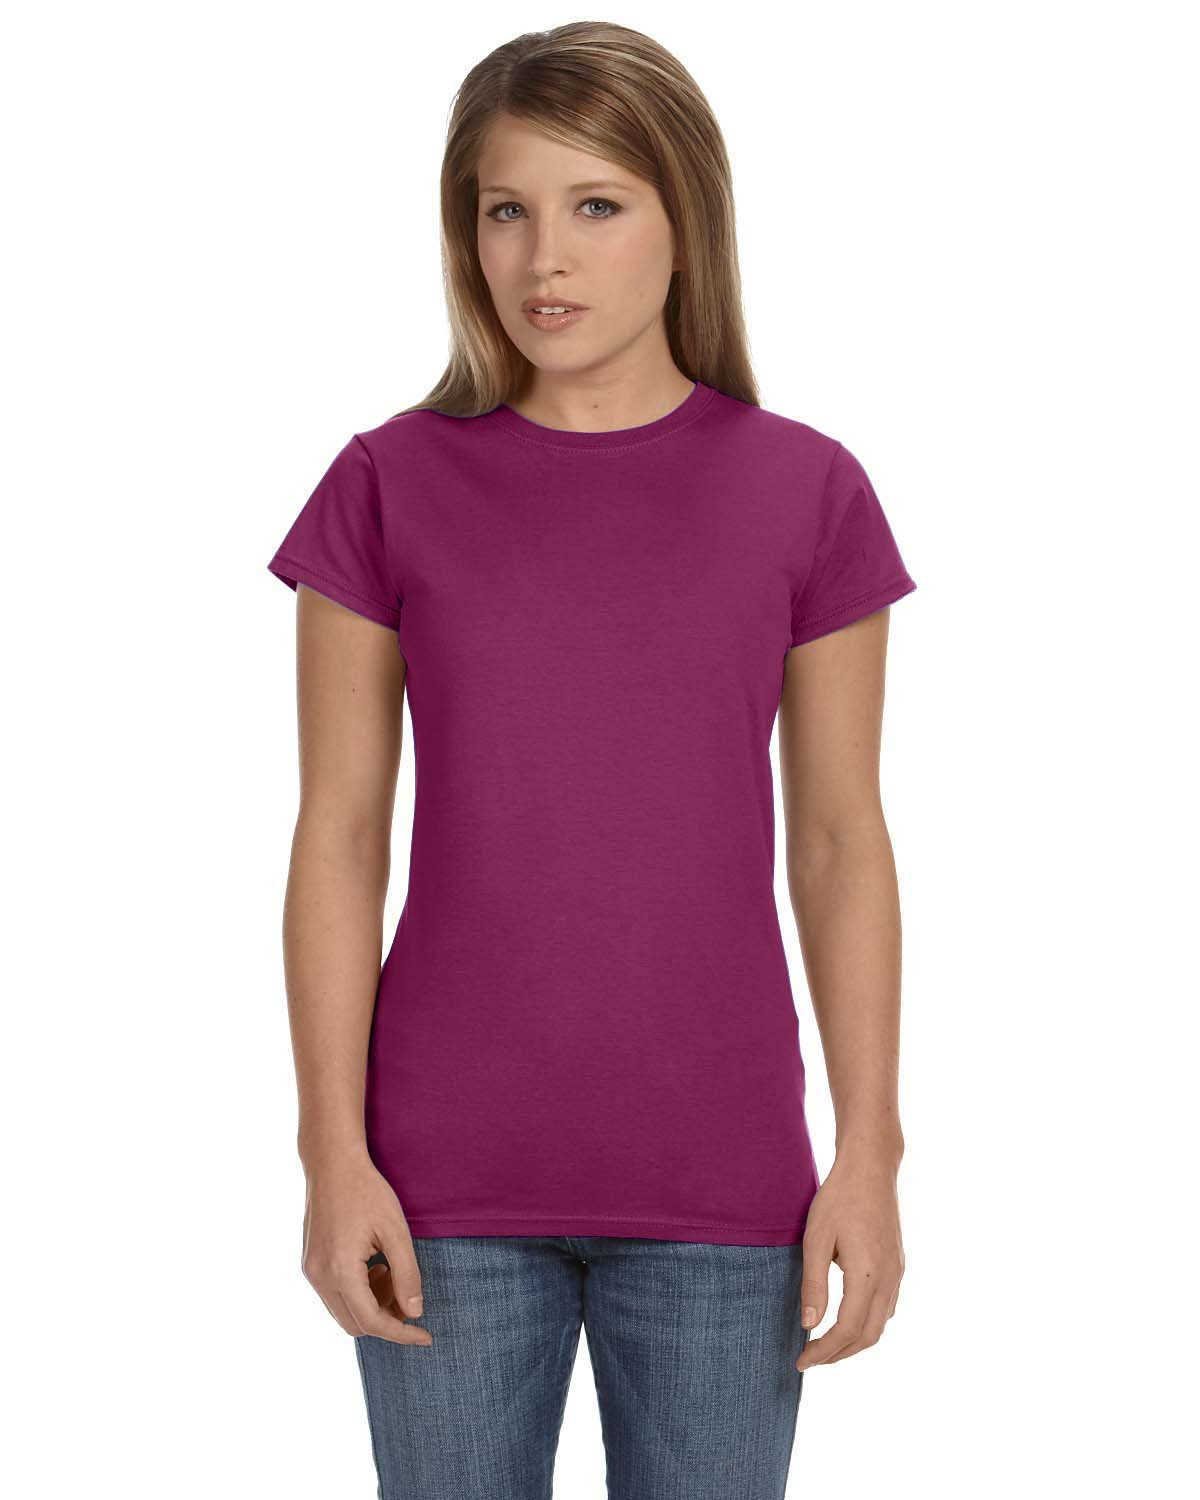 Gildan Ladies' Softstyle® 4.5 oz Fitted T-Shirt BERRY